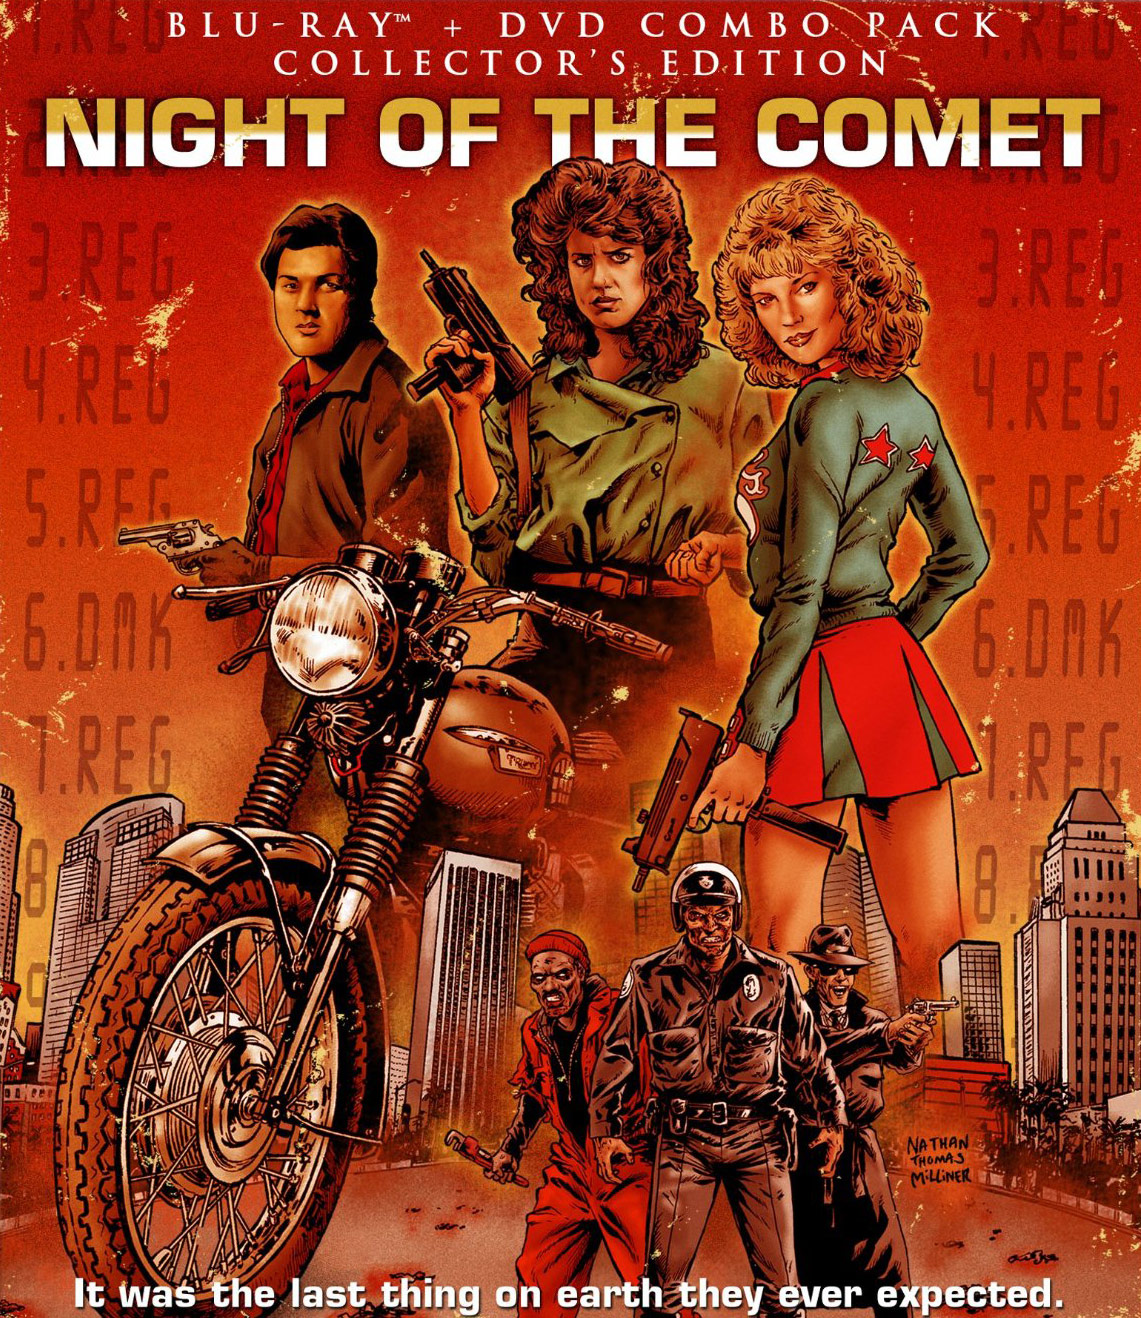 Night of the Comet is a work of cinematic genius along with The Last Star Fighter and Back to School.